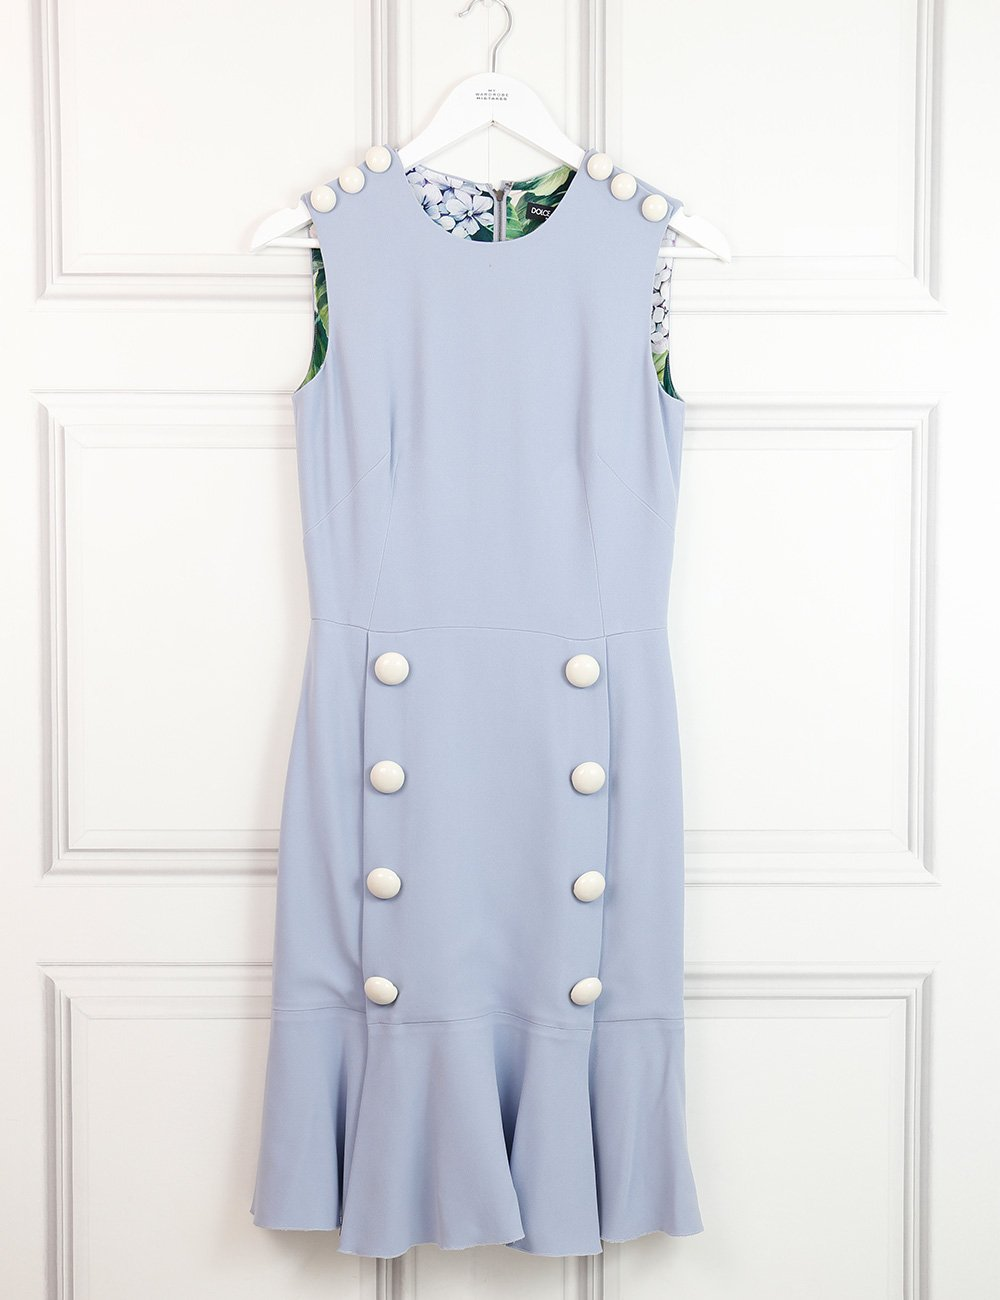 Dolce&Gabbana light blue sleeveless dress with lacquered buttons 8UK- My Wardrobe Mistakes